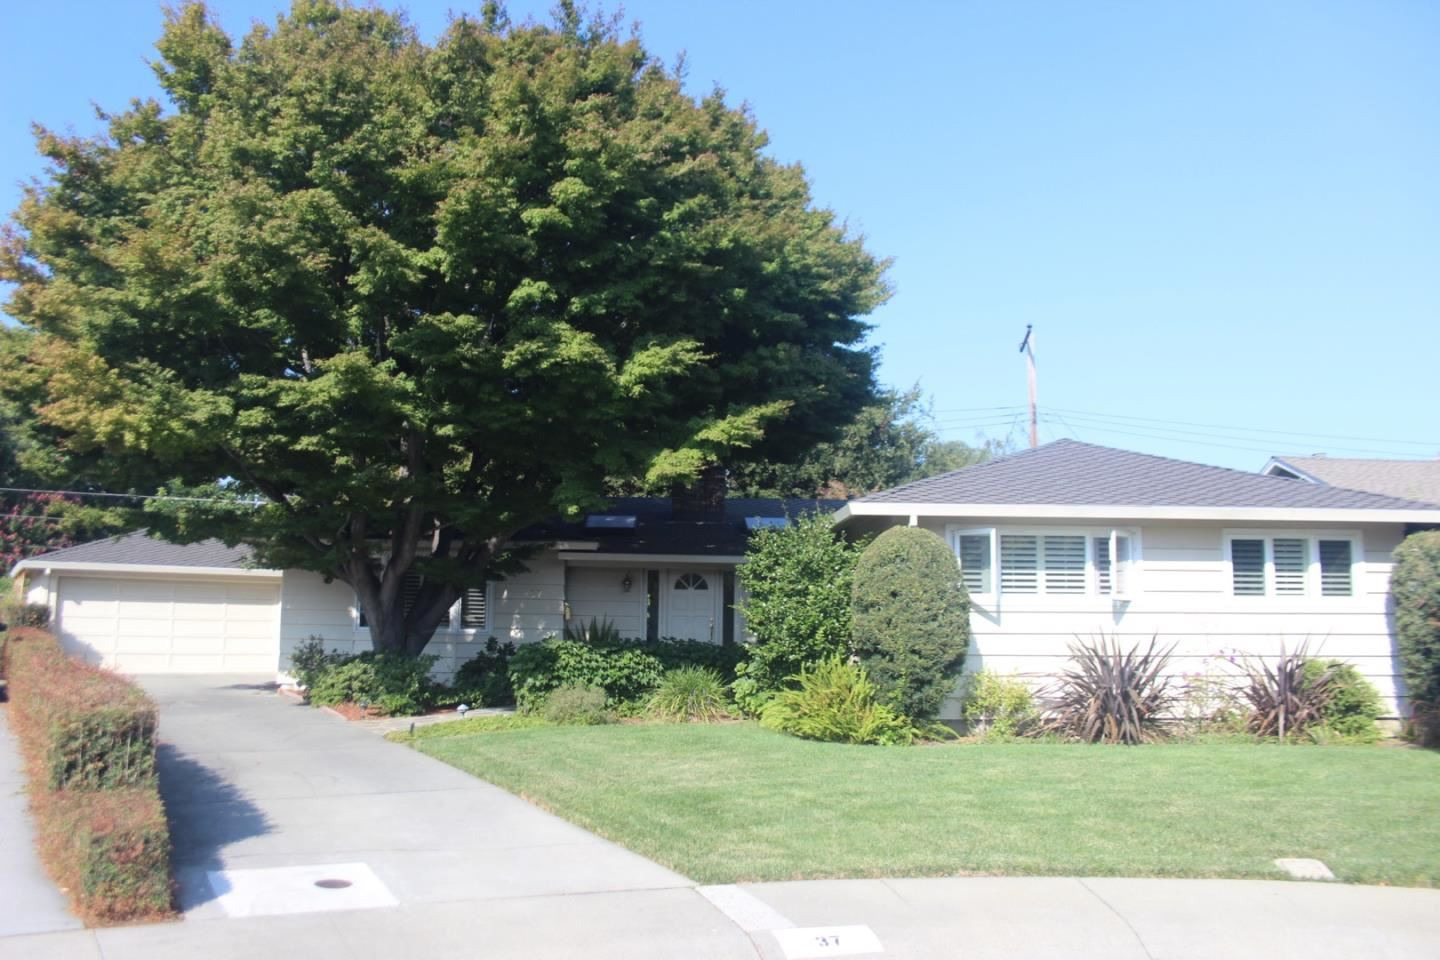 Photo for 37 Peter CT, CAMPBELL, CA 95008 (MLS # ML81809639)